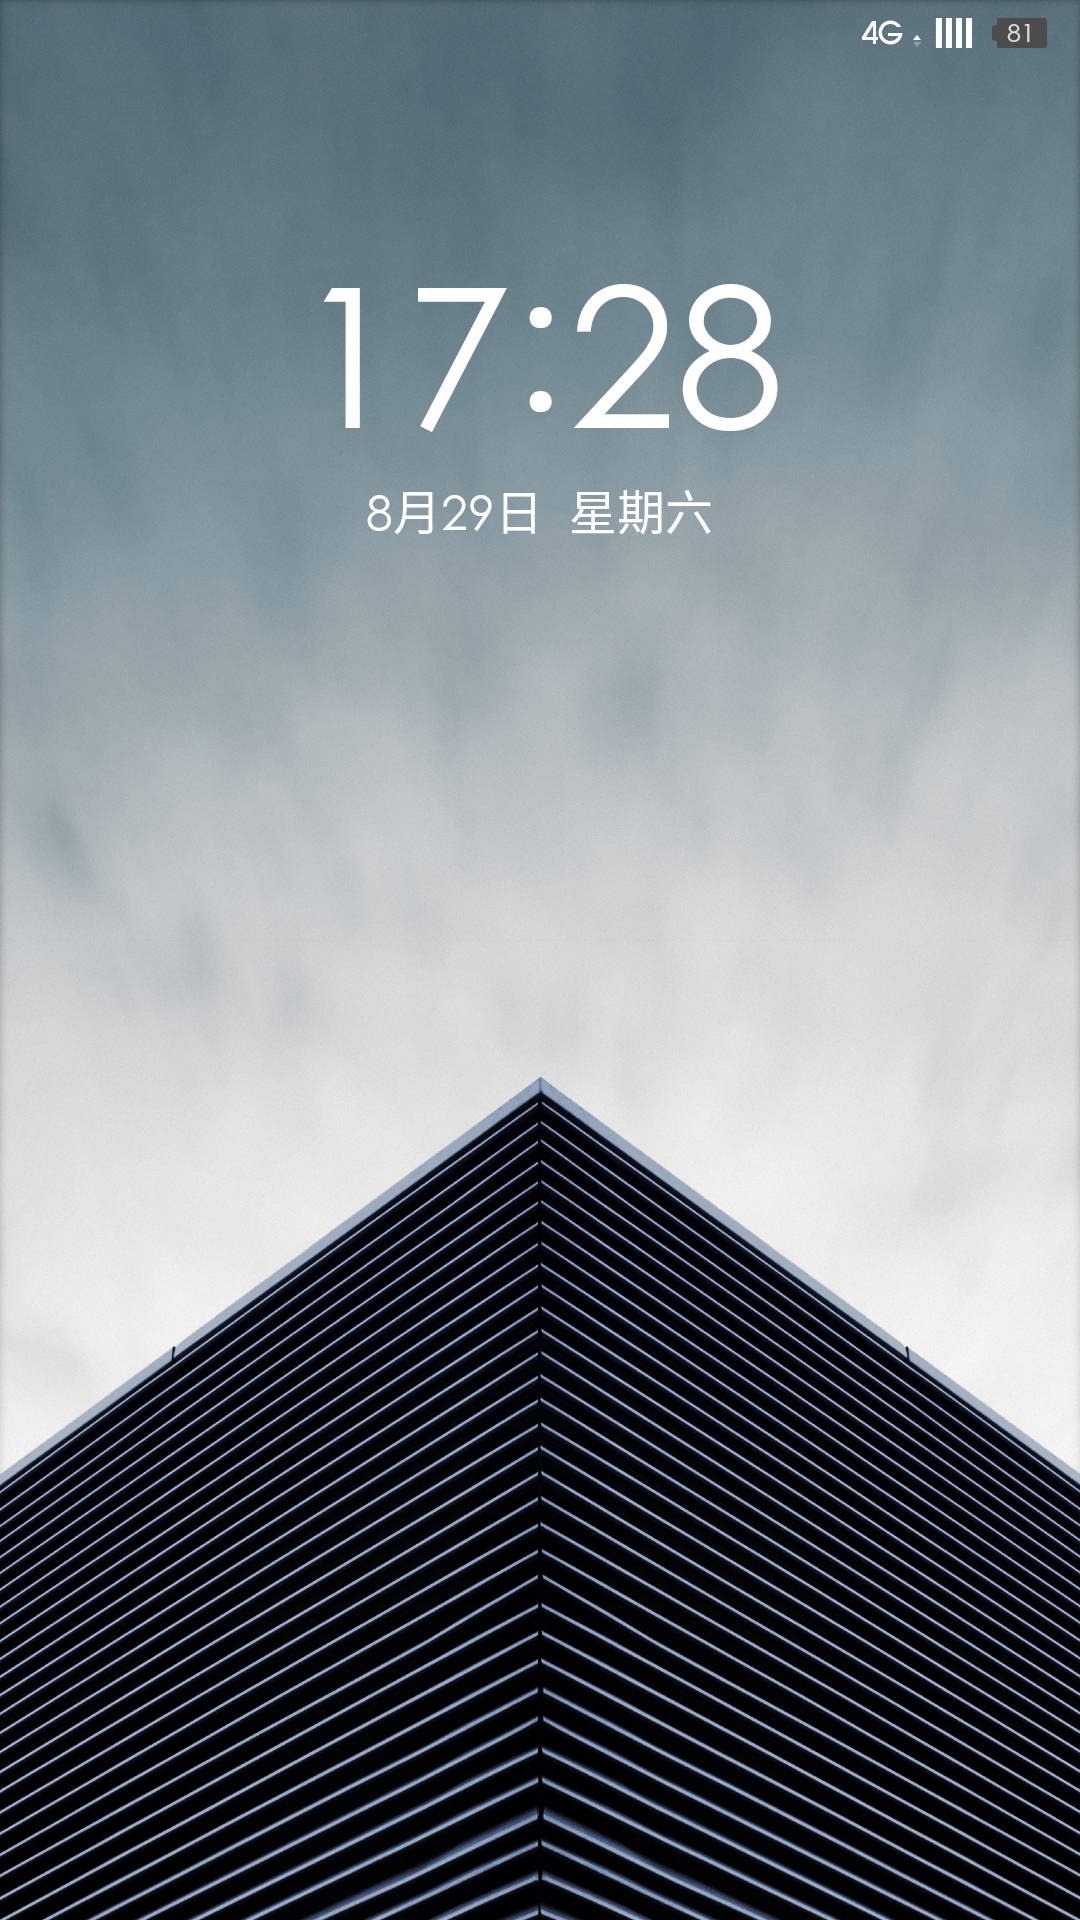 Screenshot_2015-08-29-17-28-39.png